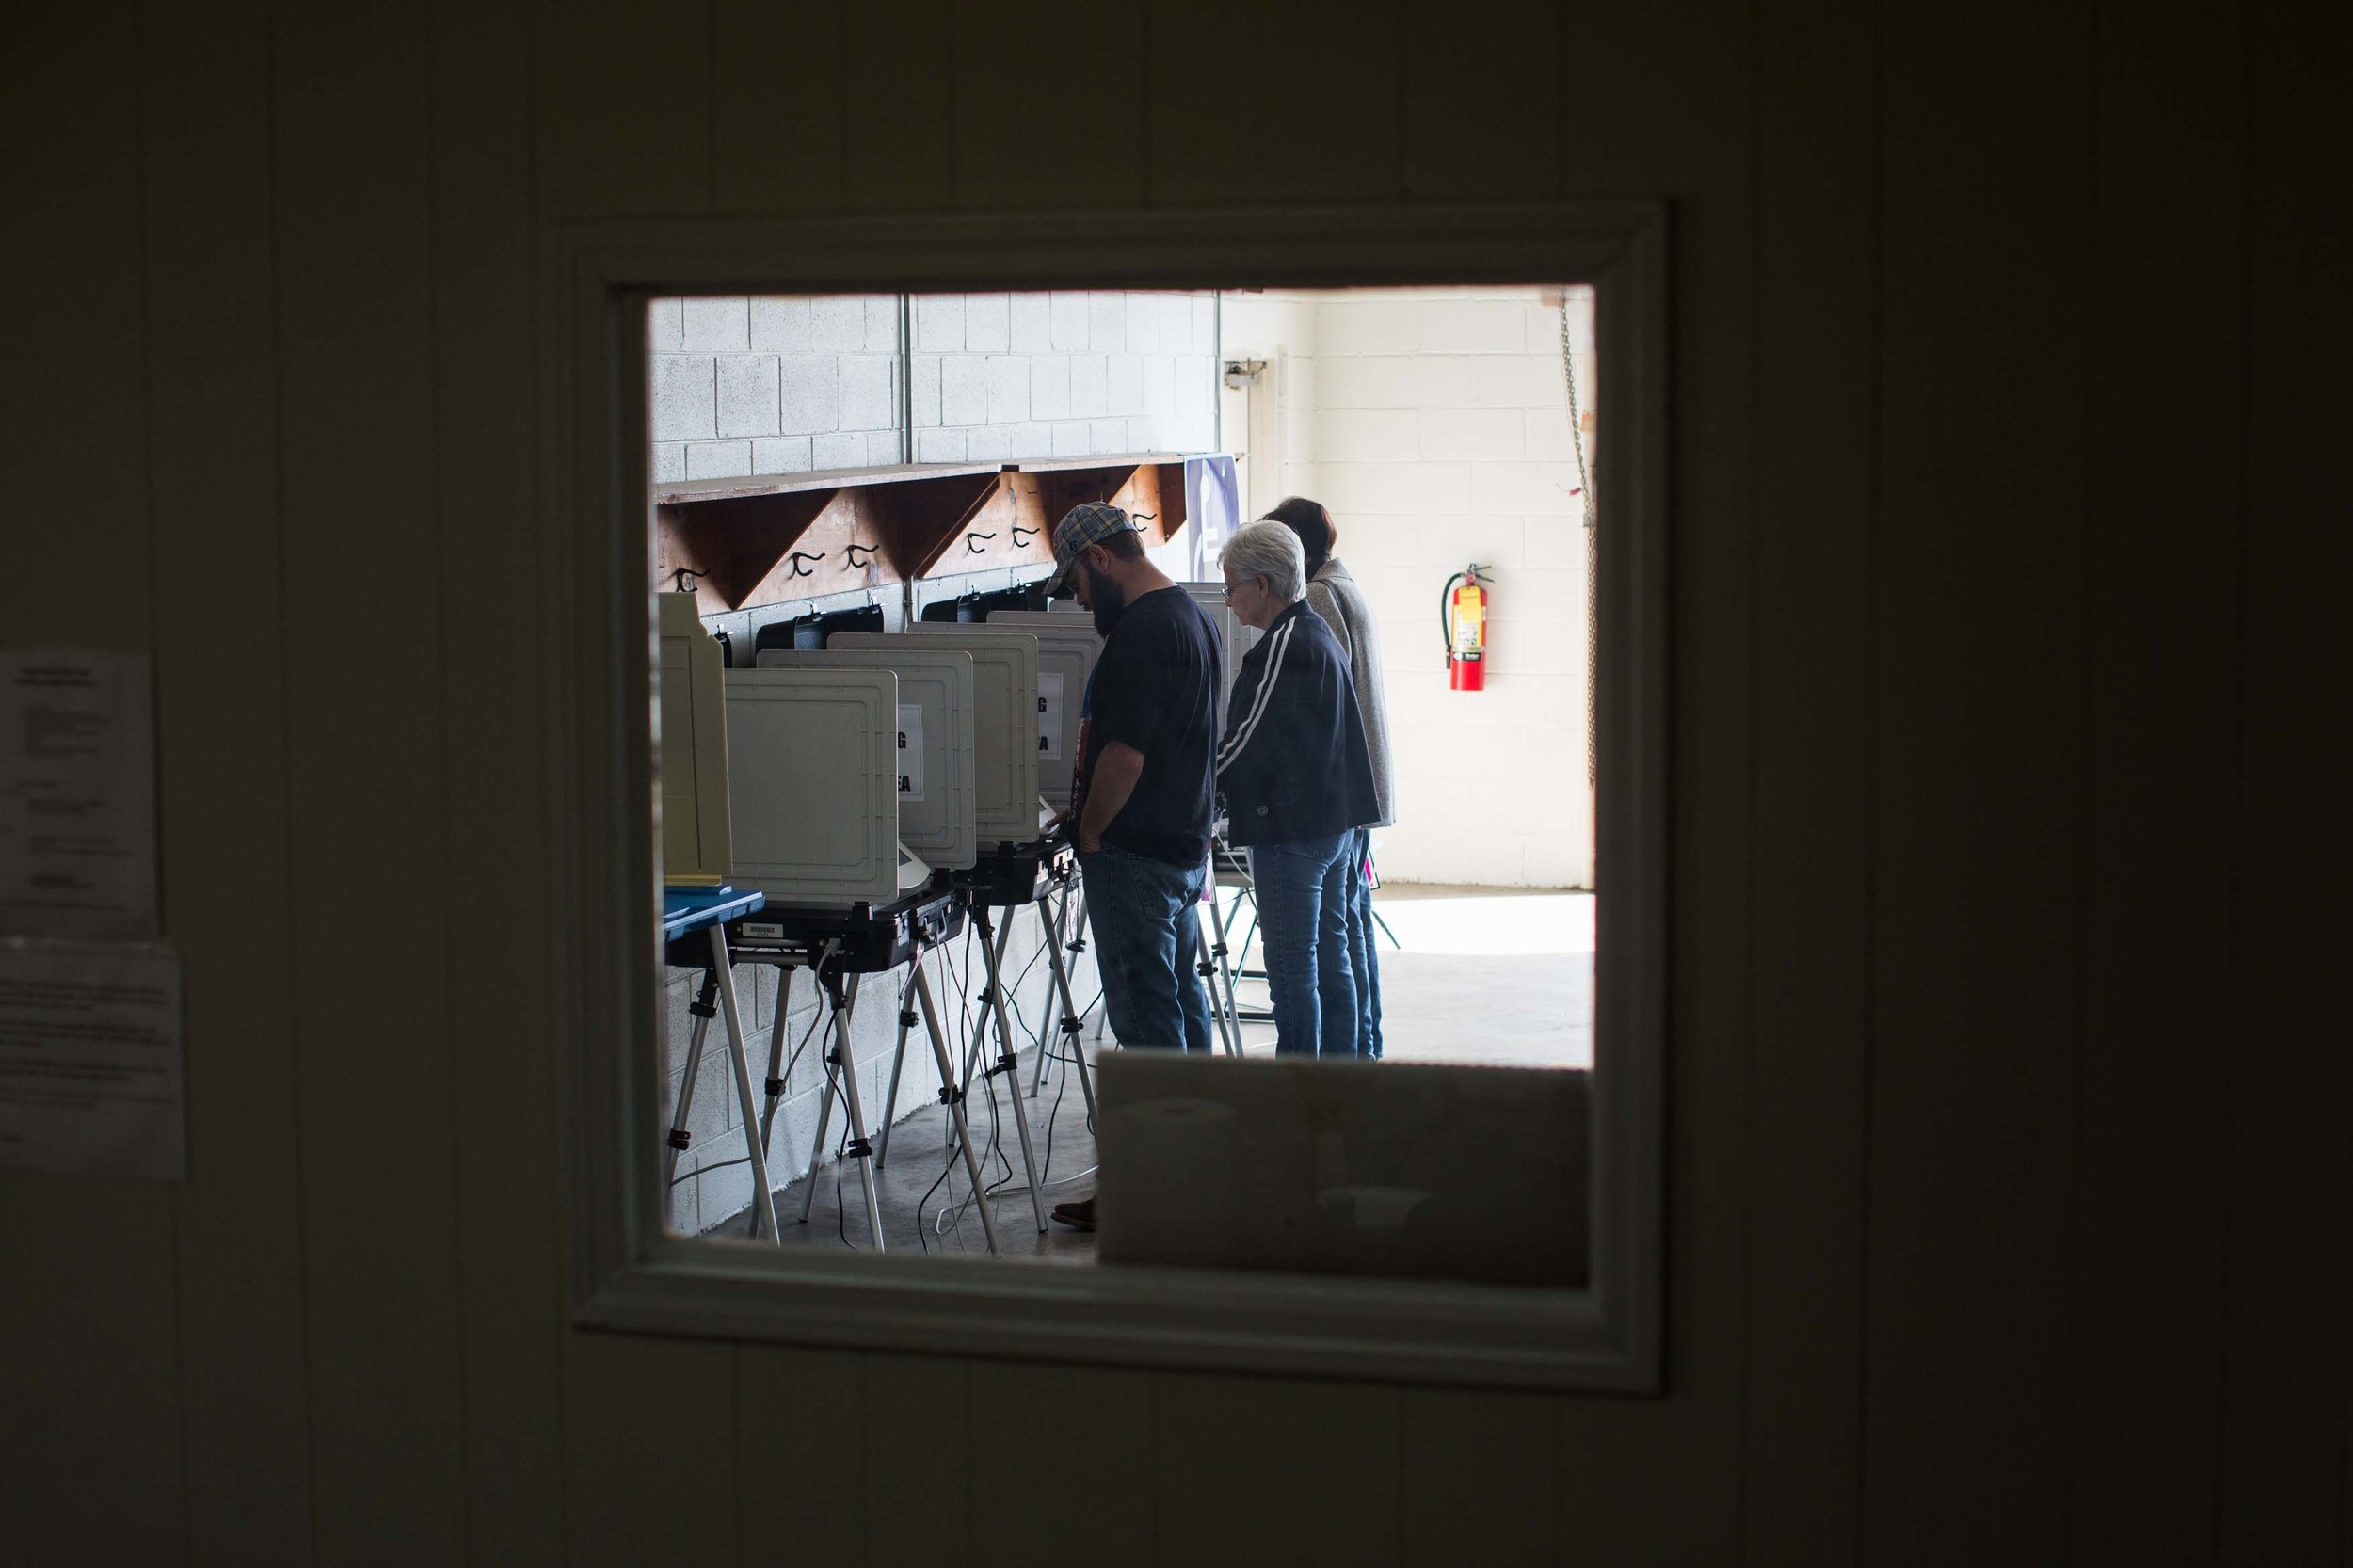 TAYLORSVILLE, GA - MARCH 1, 2016:  Georgia voters cast their ballots at Taylorsville Town Hall on Super Tuesday March 1, 2016, in Taylorsville, Georgia.  Voters head to the polls to cast their votes on Georgia's presidential primary.   (Photo by Branden Camp/Getty Images)